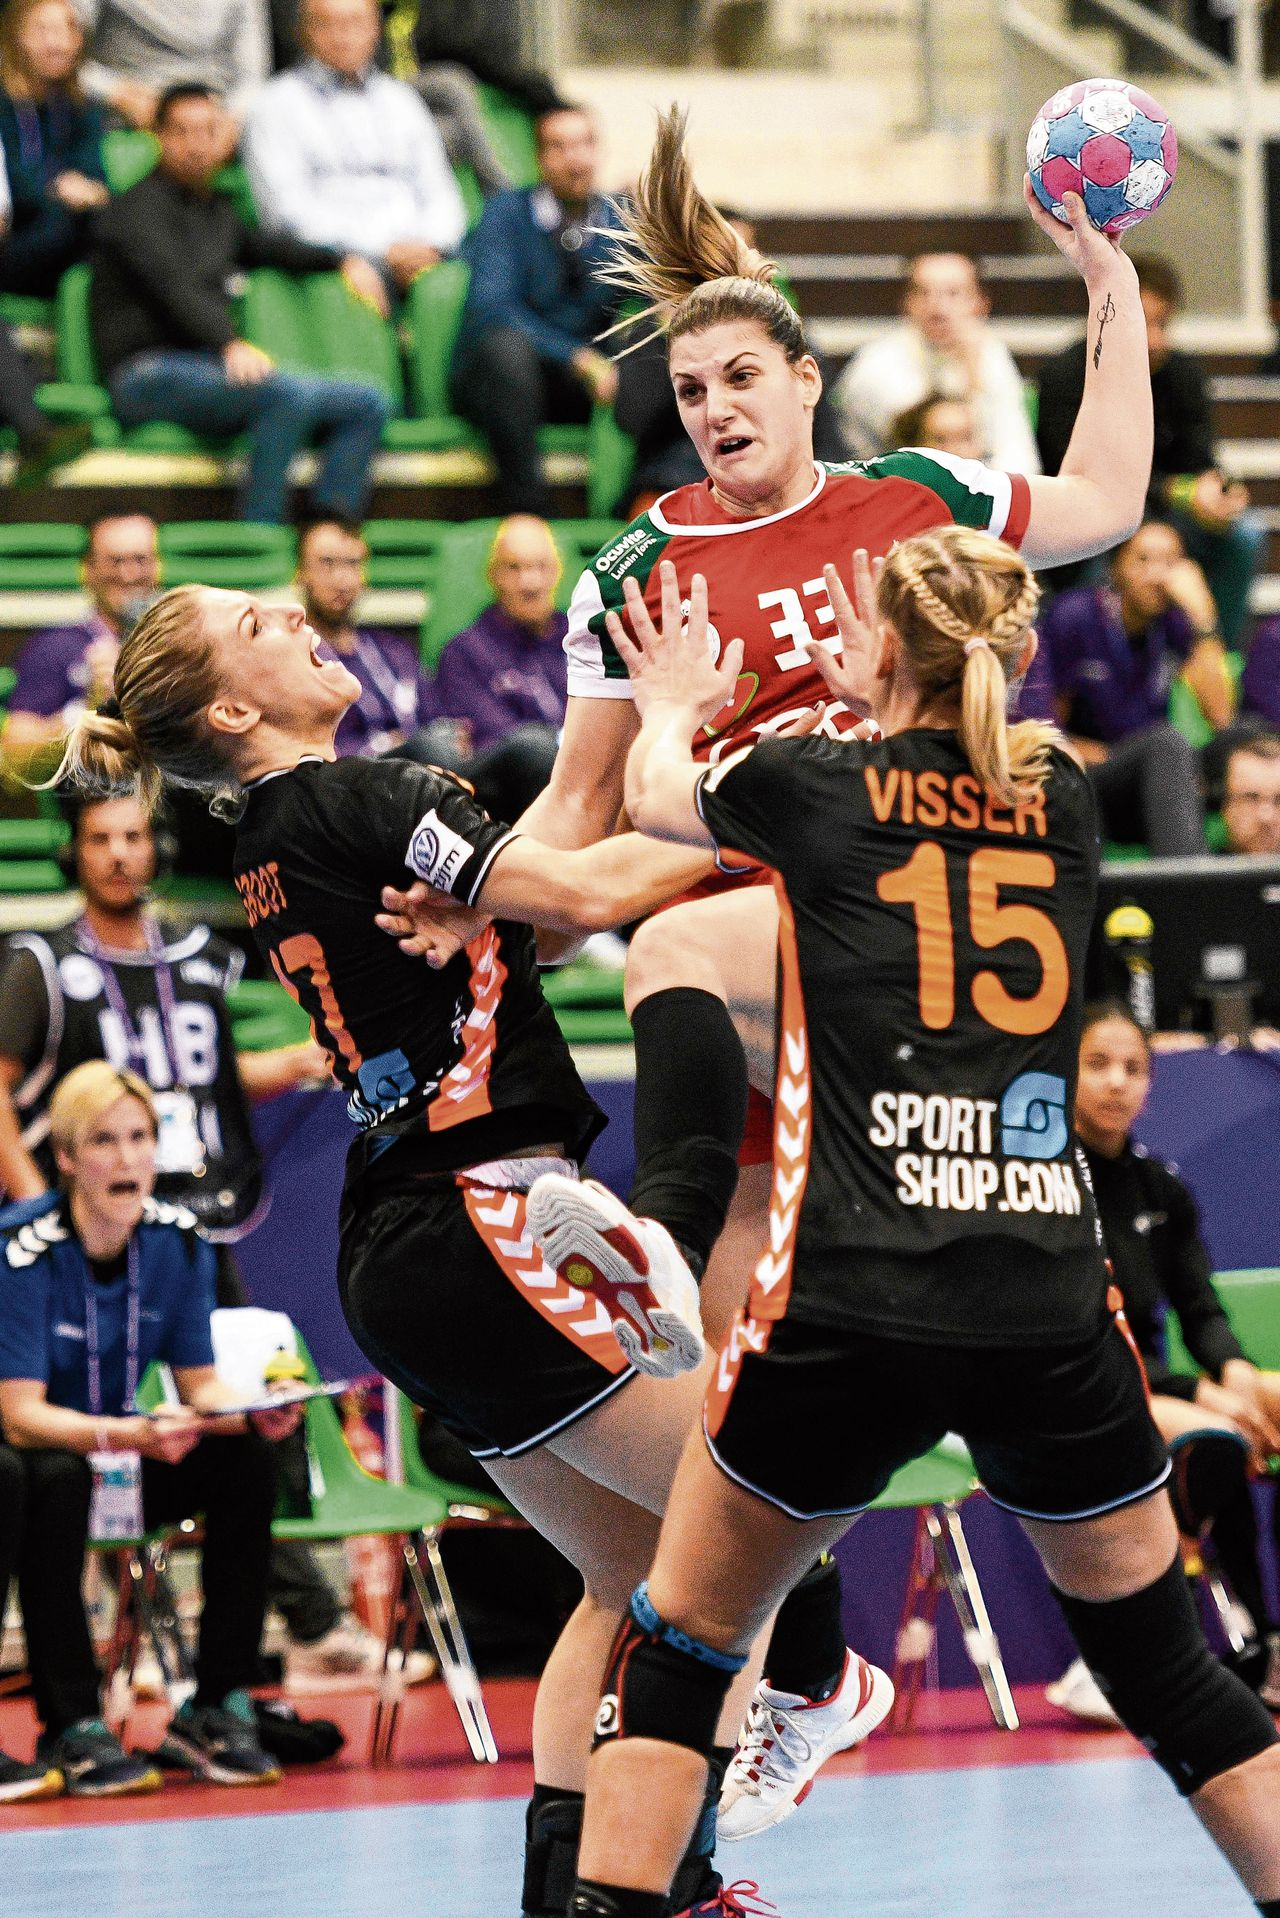 Hungarian right back Anna Kovacs (2ndR) vies with Dutch center back Nycke Groot (L) and Dutch center back Maura Visser (R) during the Women Euro 2018 handball Championships group C preliminary round match between Hungary vs Netherlands on December 1, 2018 at the Axone arena in Montbeliard. (Photo by SEBASTIEN BOZON / AFP)